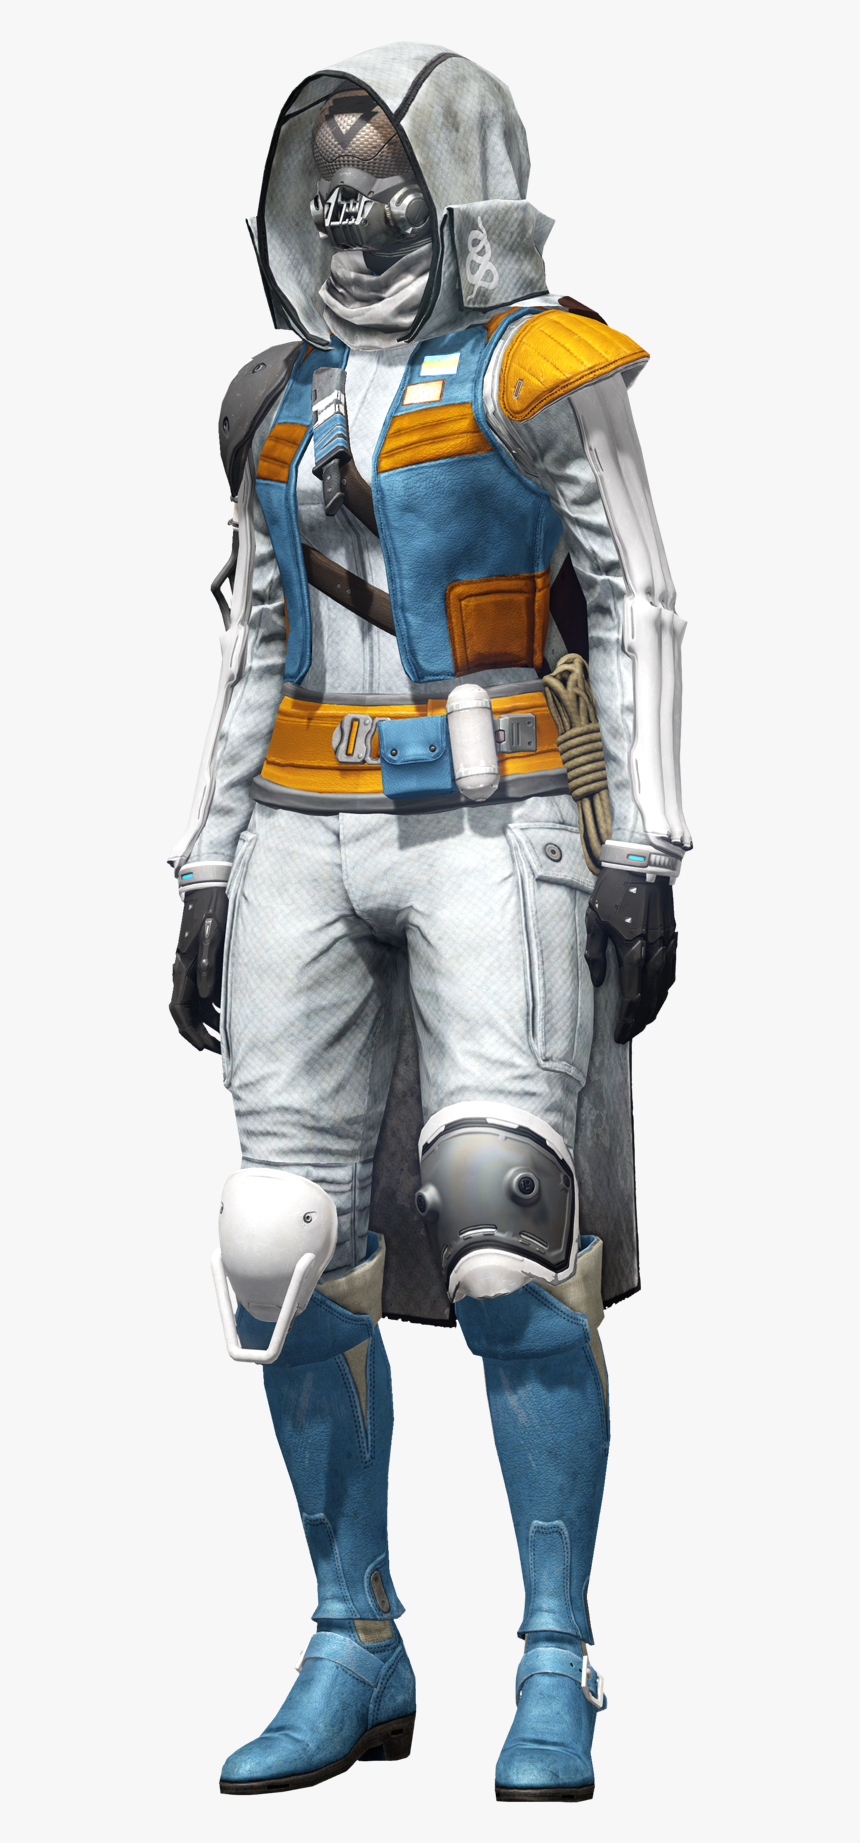 Ps4 Exclusive Hunter Armor Destiny 2, HD Png Download, Free Download